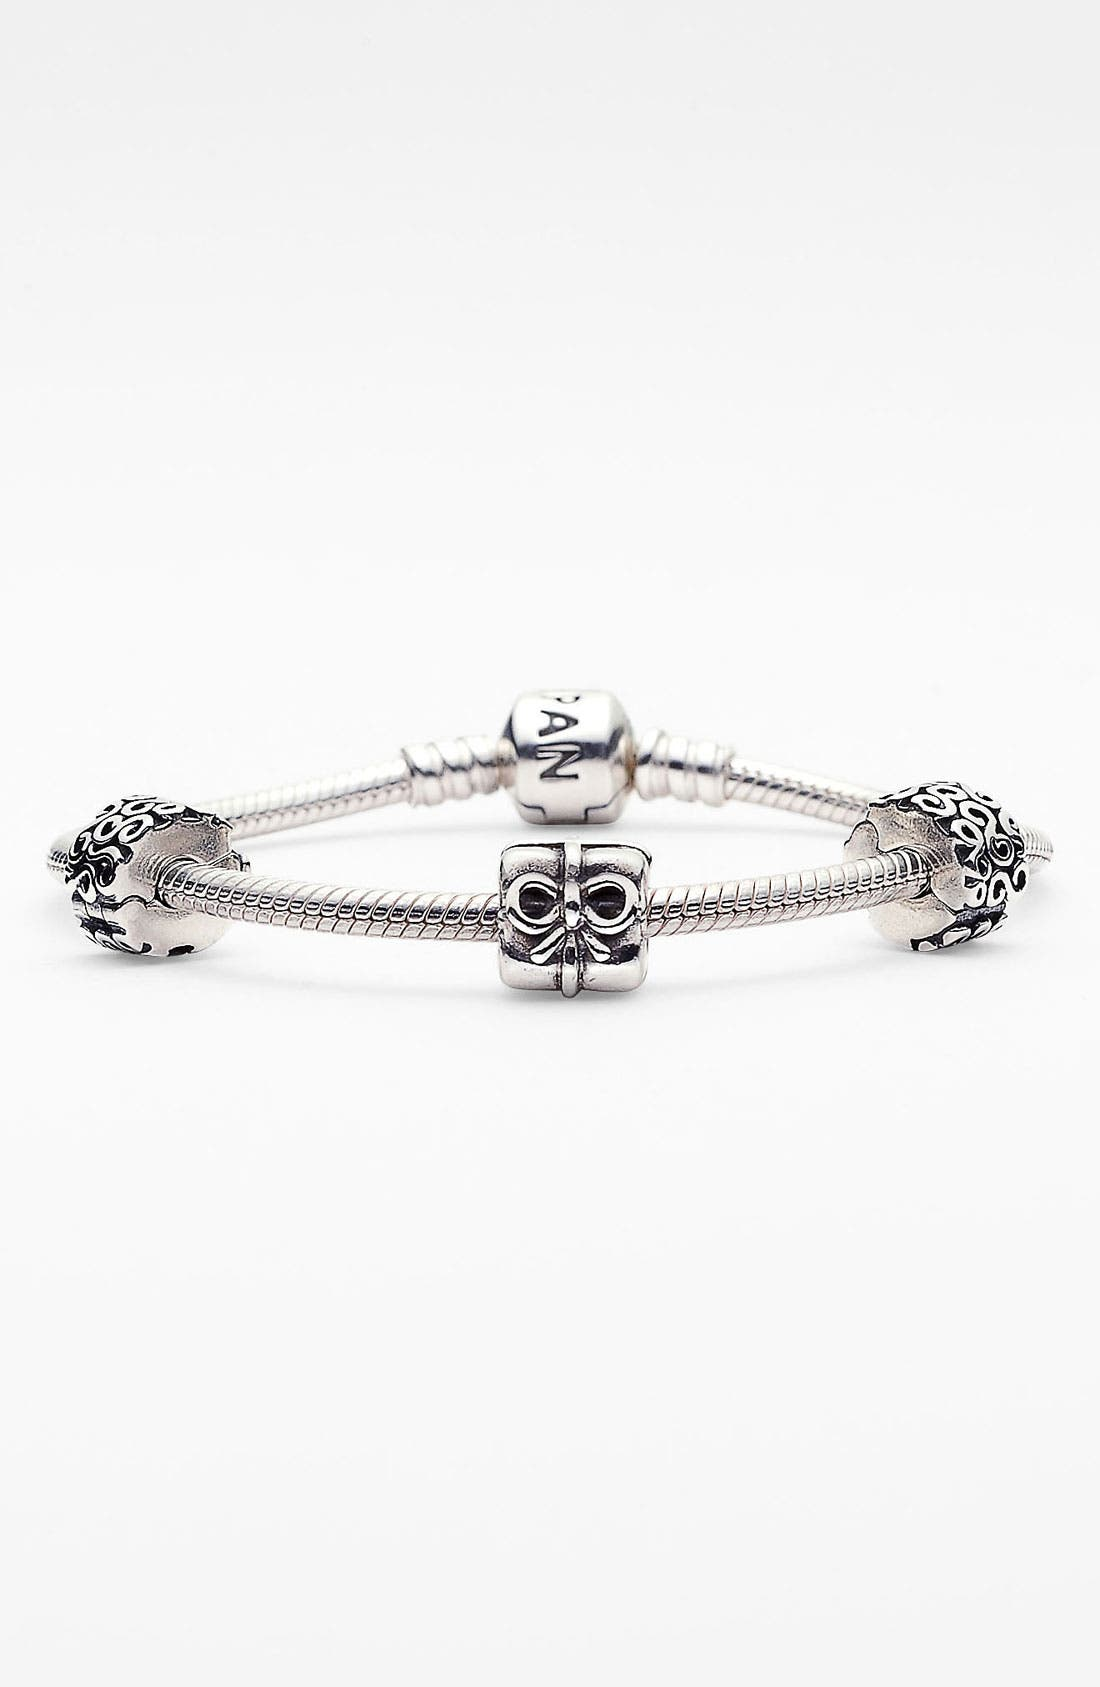 Main Image - PANDORA Boxed Holiday Bracelet Gift Set (Limited Edition) ($160 Value)